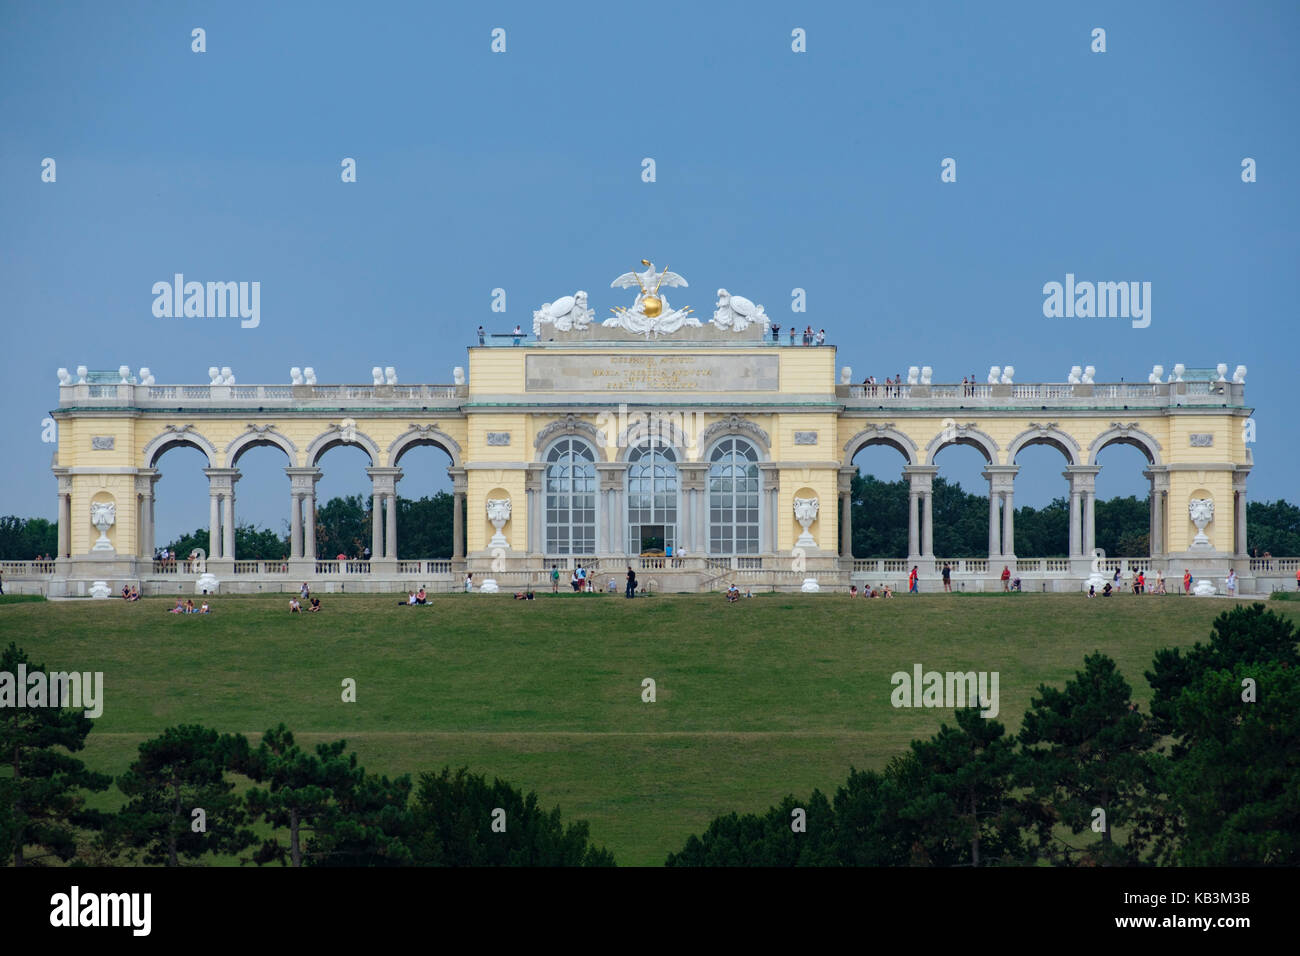 Gloriette at Schönbrunn Palace in Vienna, Austria, Europe - Stock Image